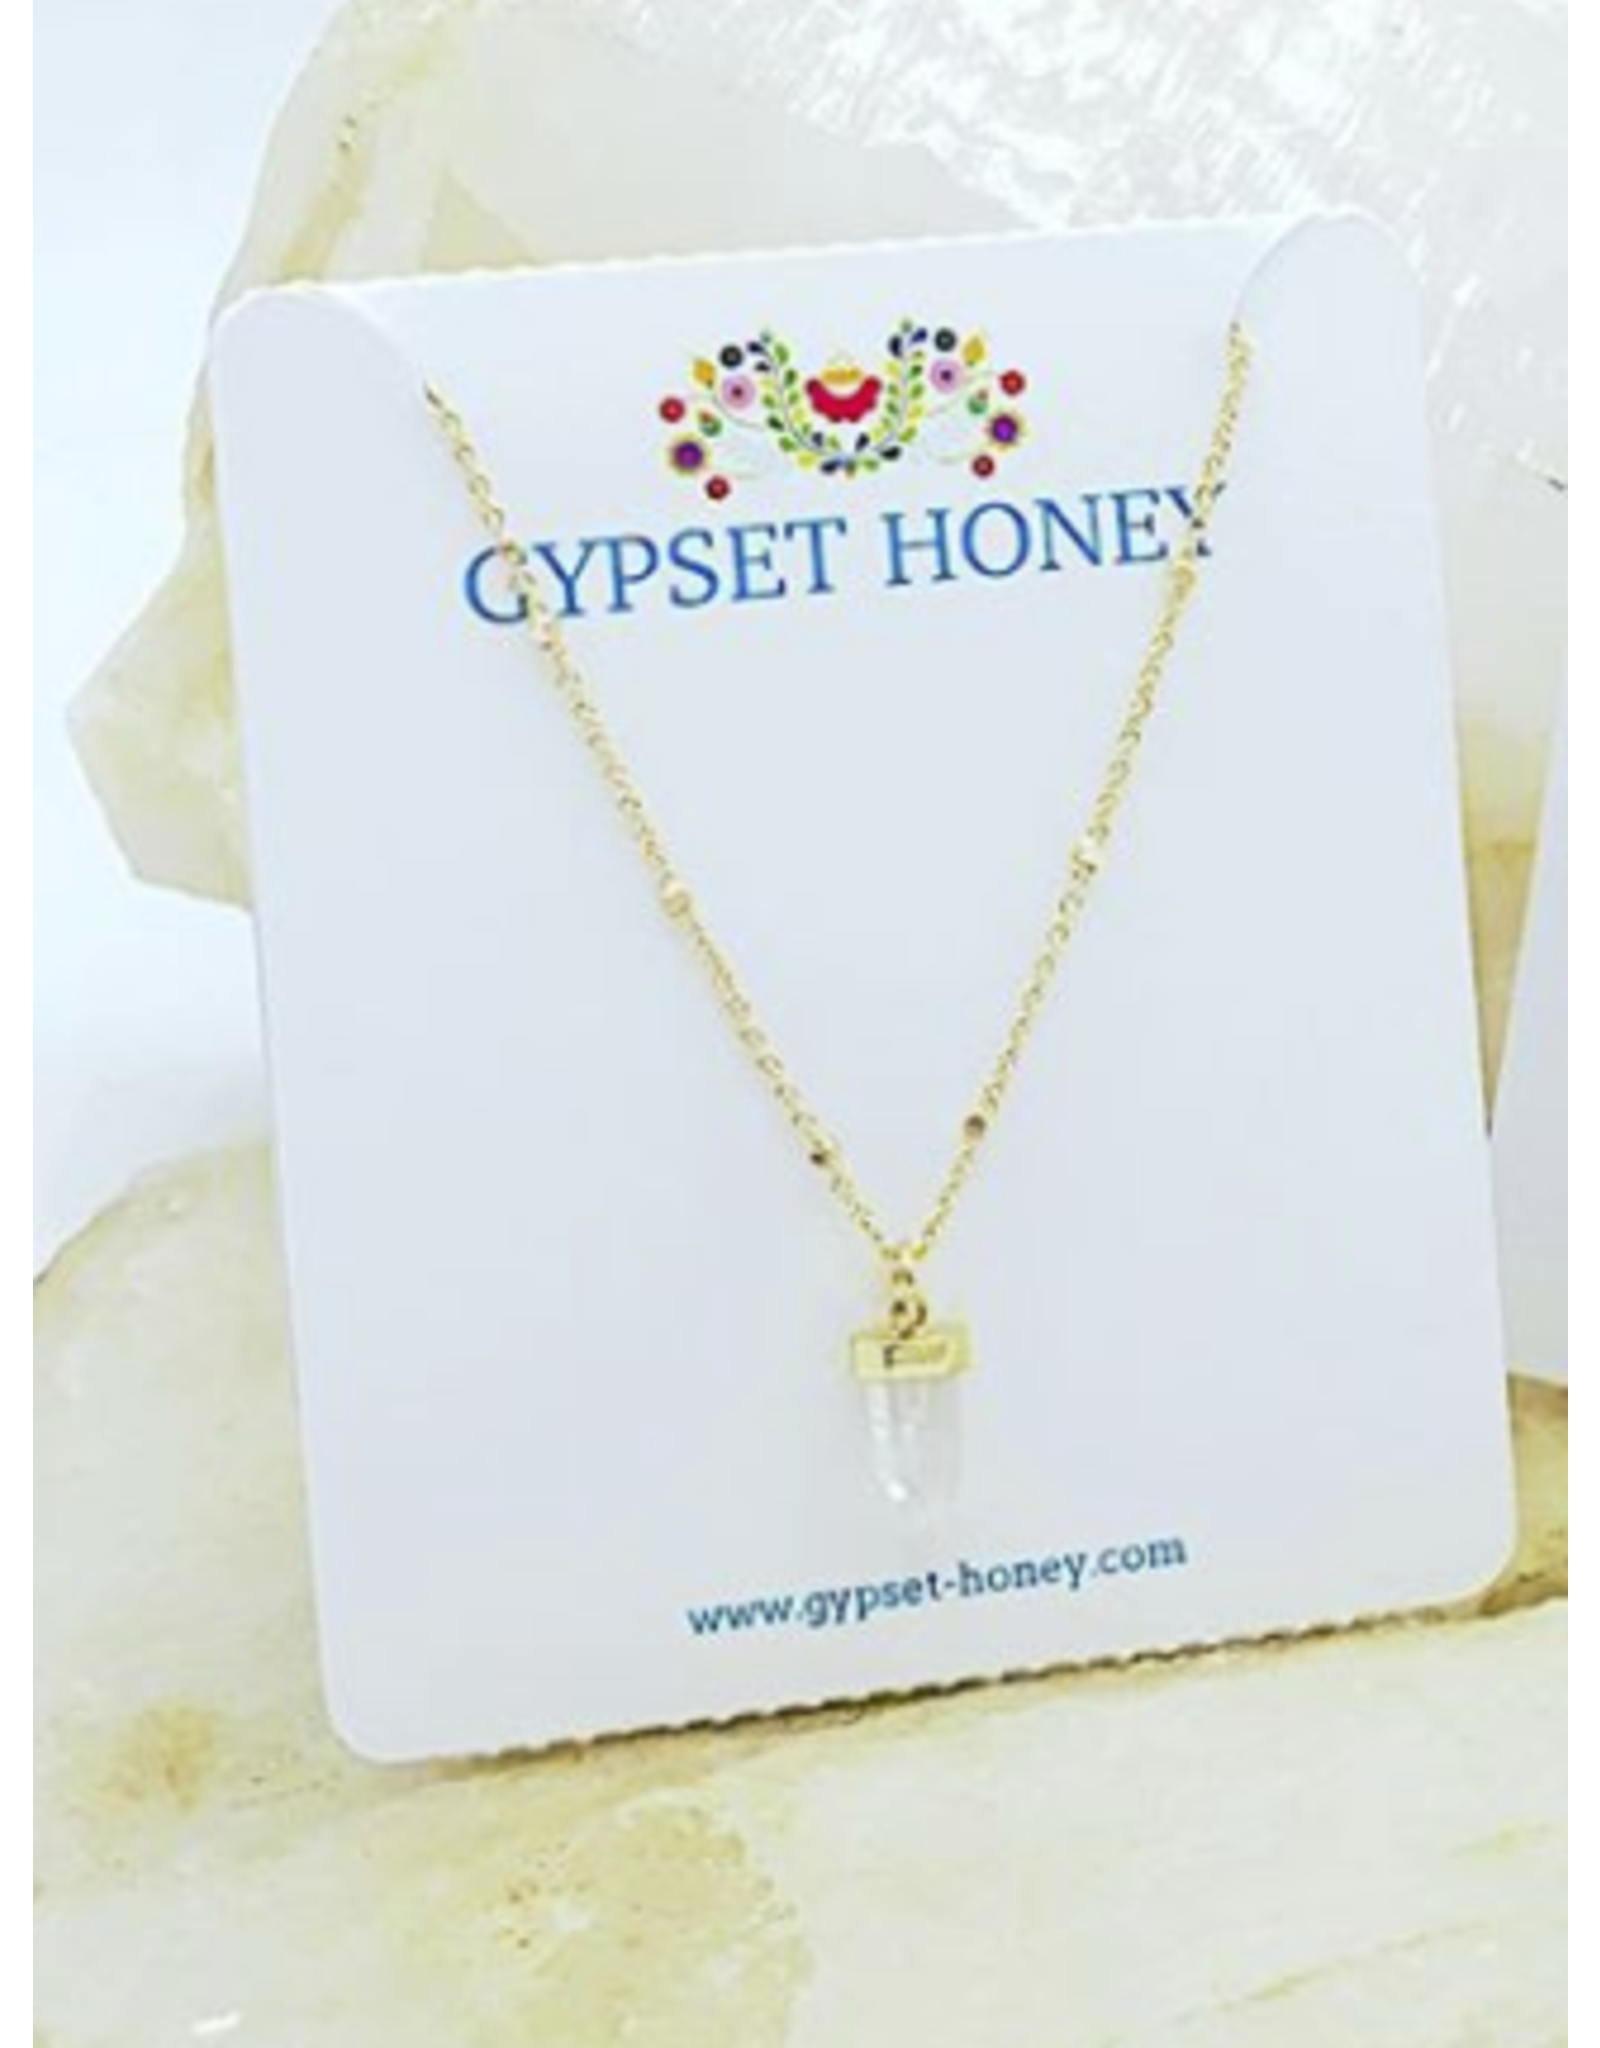 GYPSET HONEY MEI STONE NECKLACE